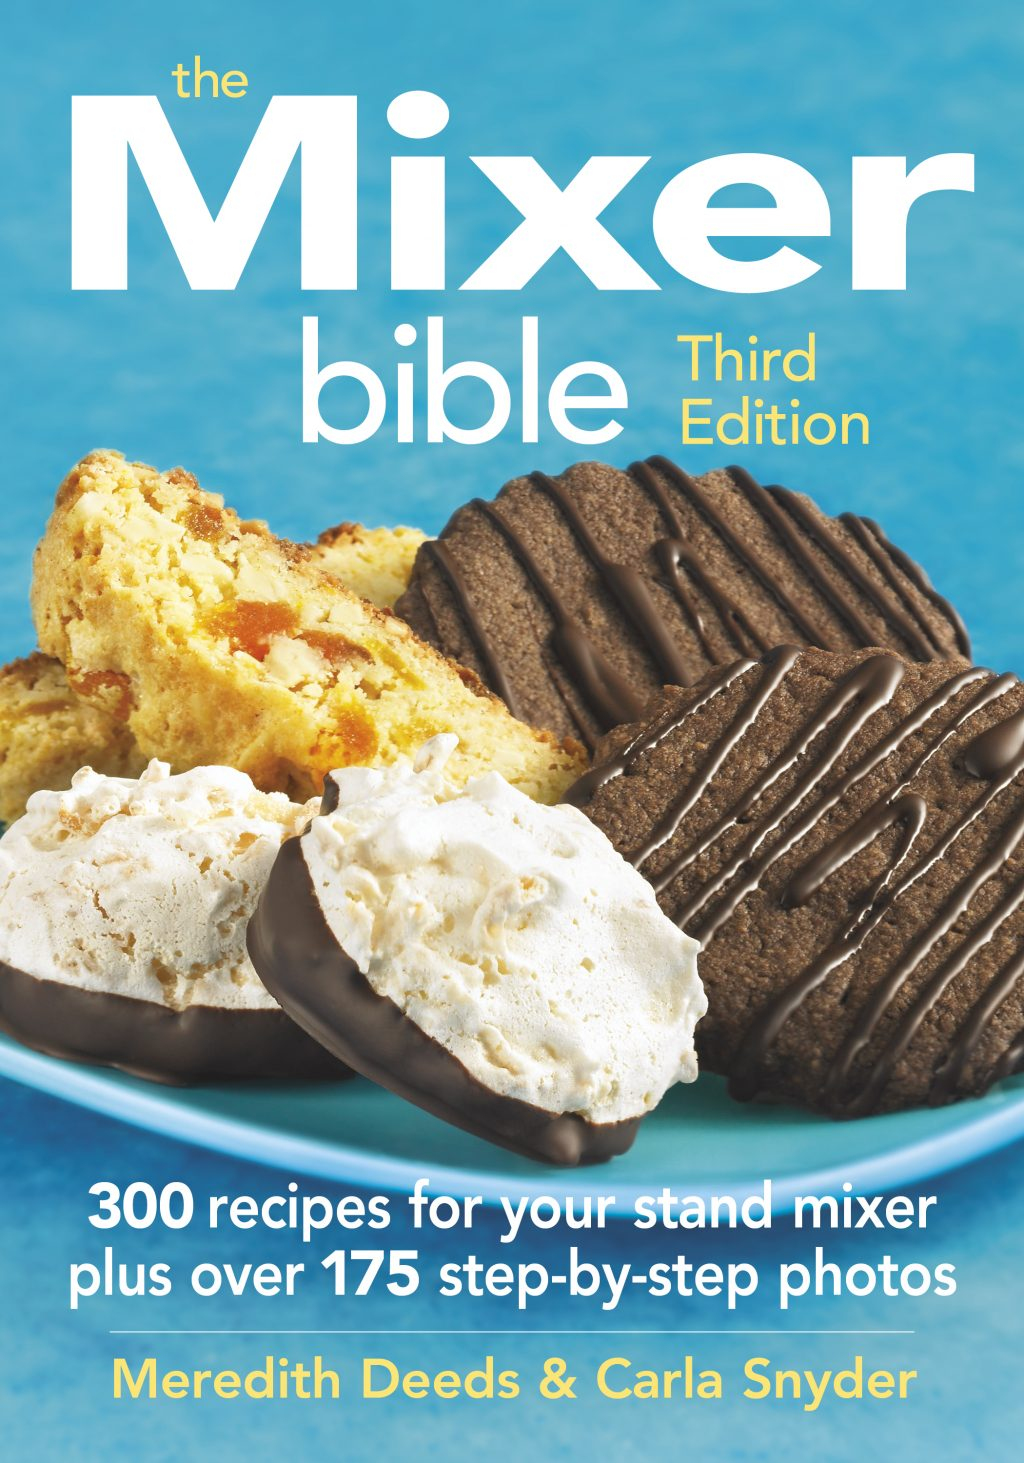 The Mixer Bible Third Edition Cookbook by Meredith Deeds and Carla ...